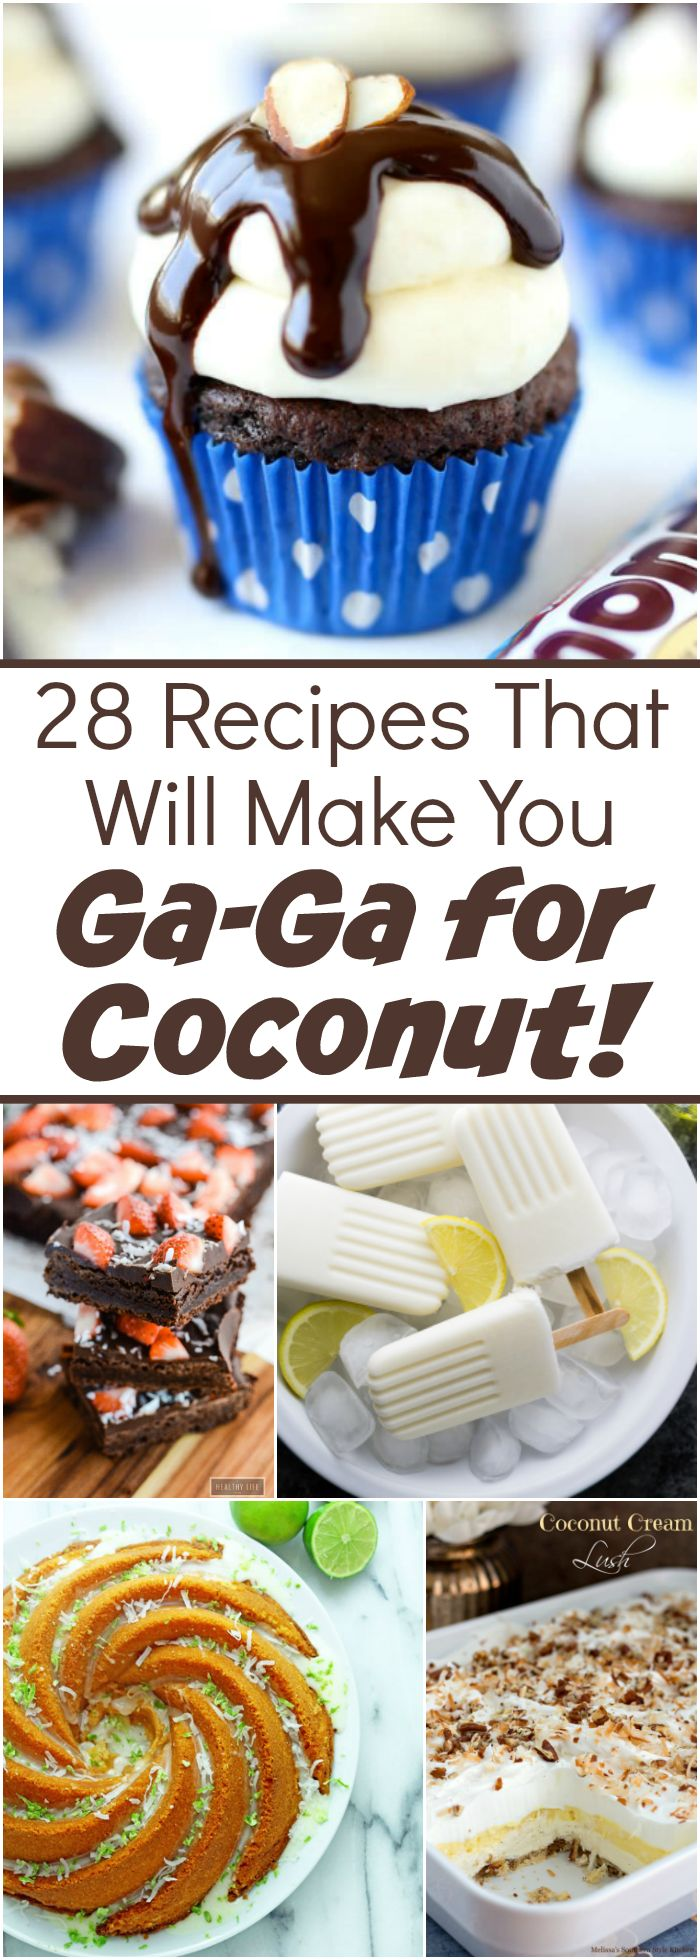 28 Recipes That Will Make You Ga-Ga for Coconut!